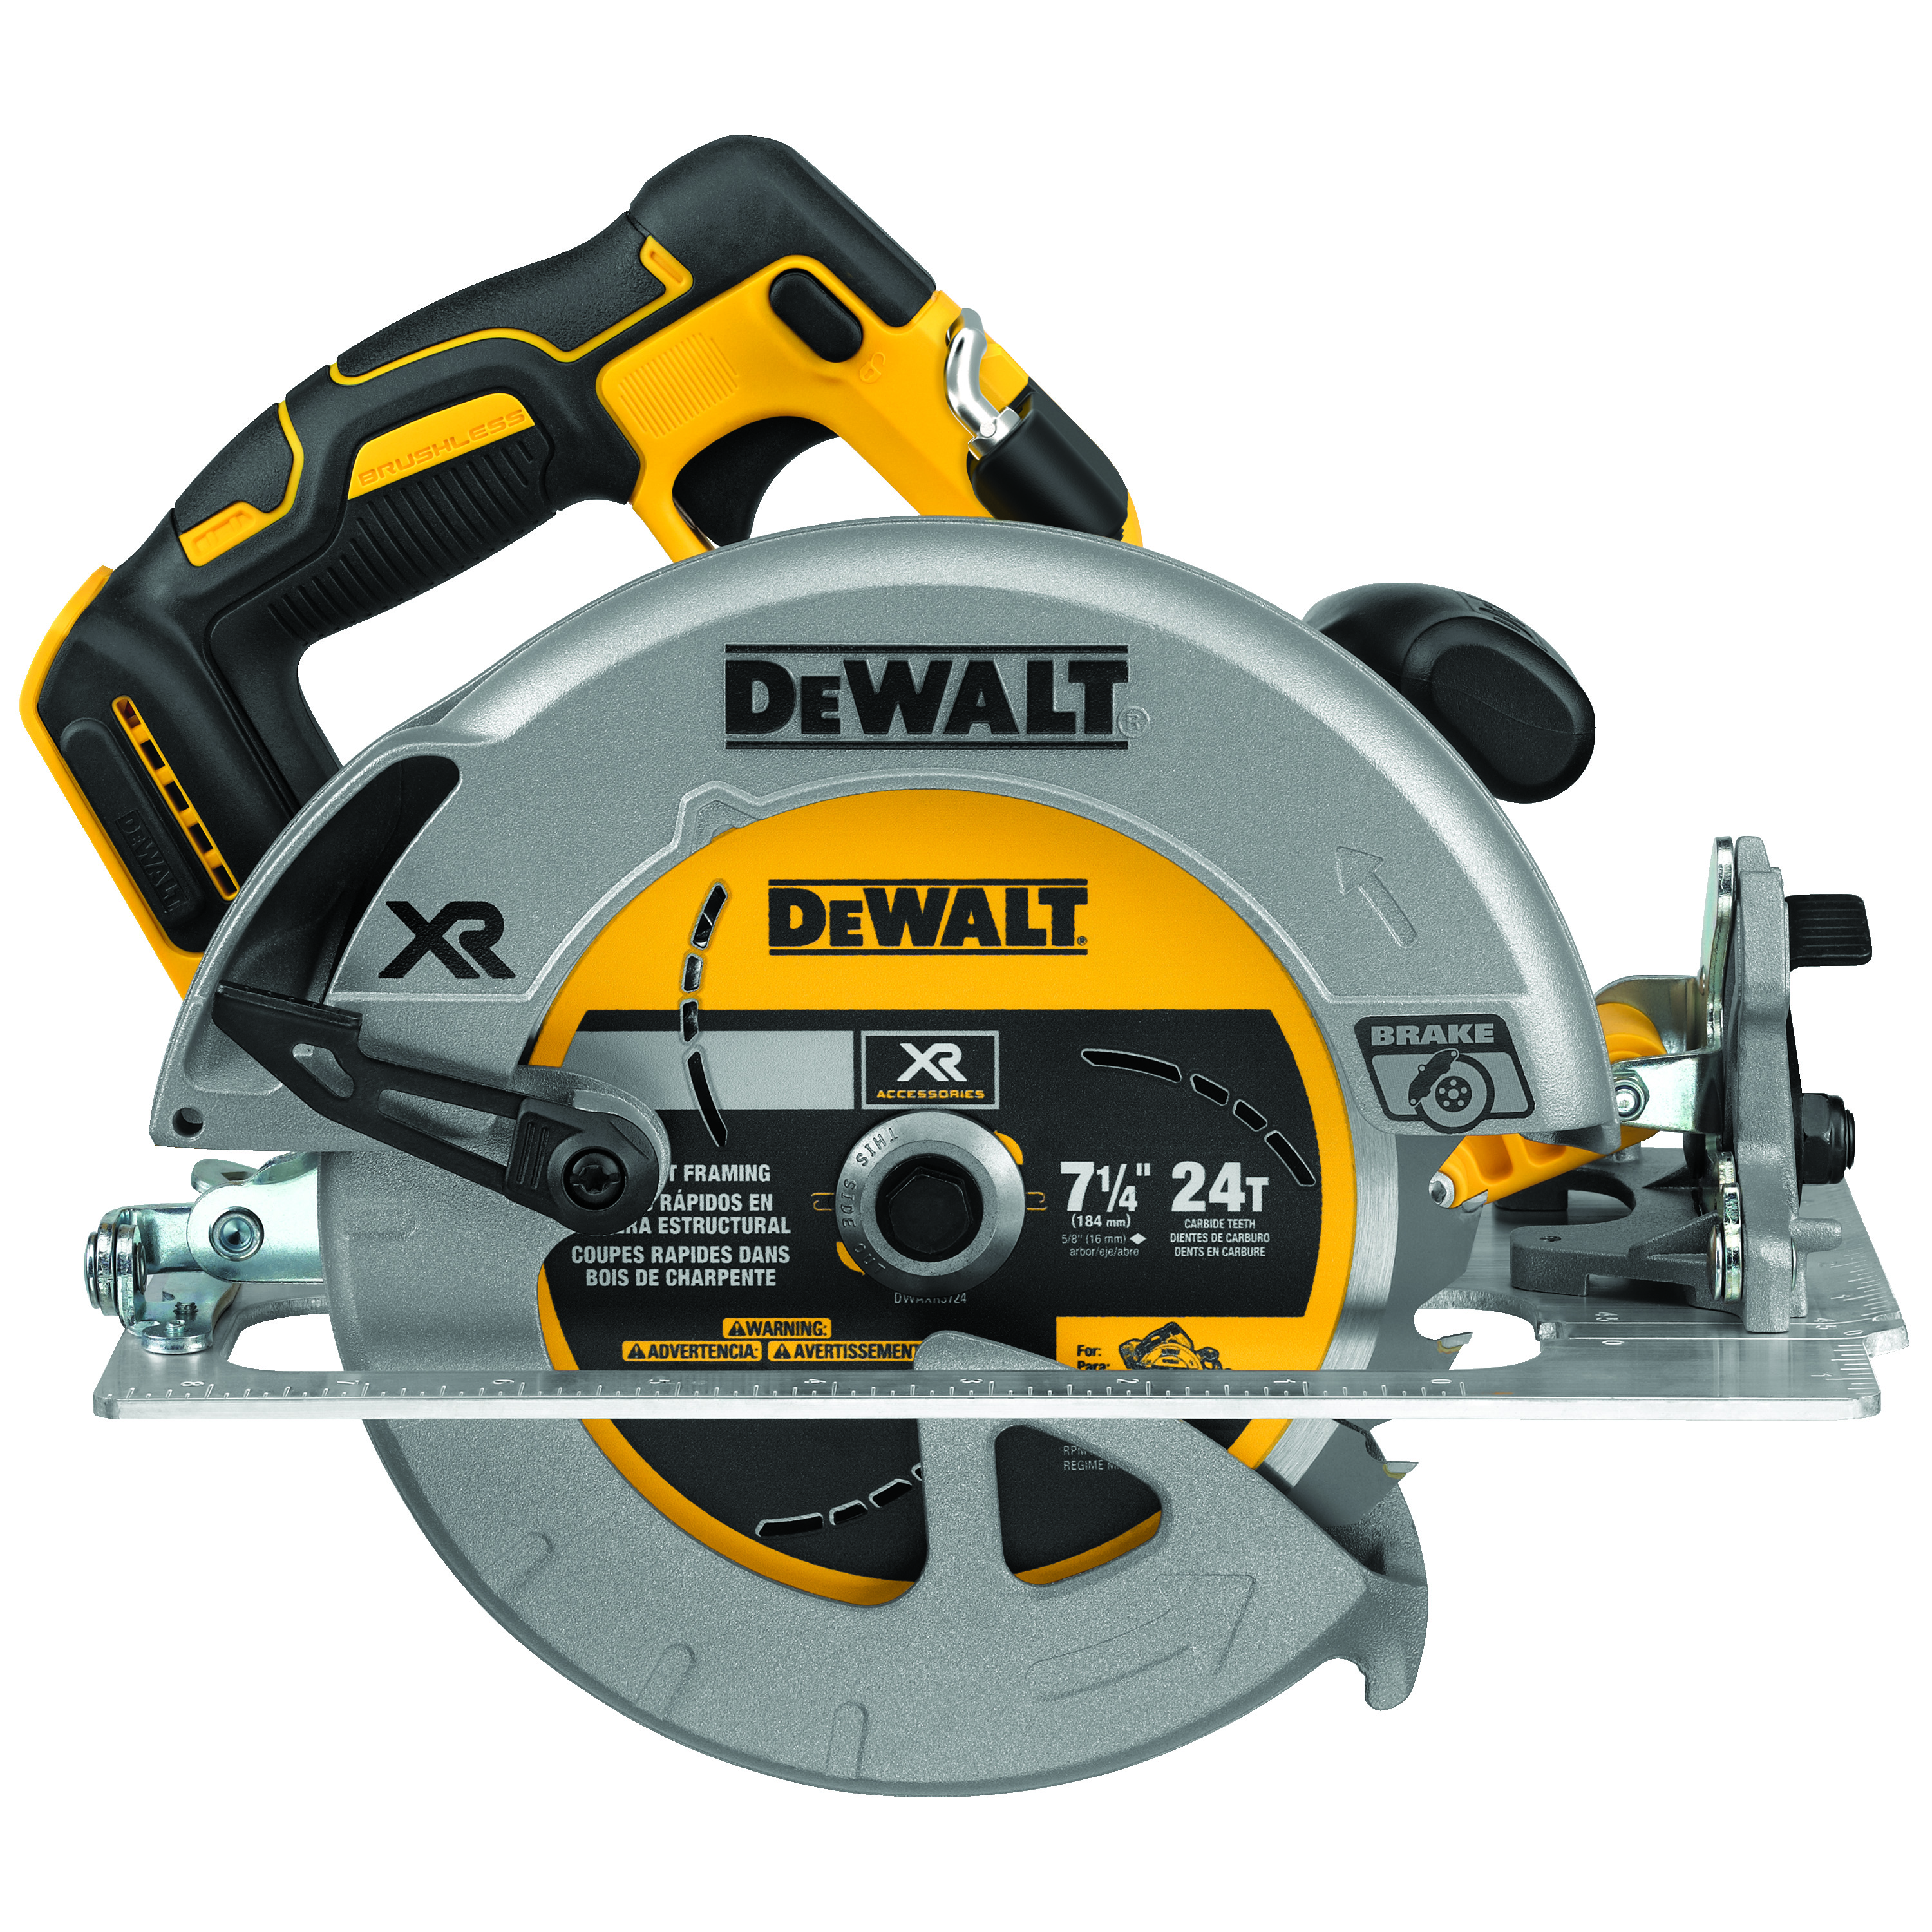 DeWALT® DCS570B Cordless Circular Saw With Electrical Brake, 7-1/4 in Blade, 5/8 in Arbor/Shank, 20 VDC, 2 in, 2-9/16 in D Cutting, Lithium-Ion Battery, Left Blade Side, Bare Tool